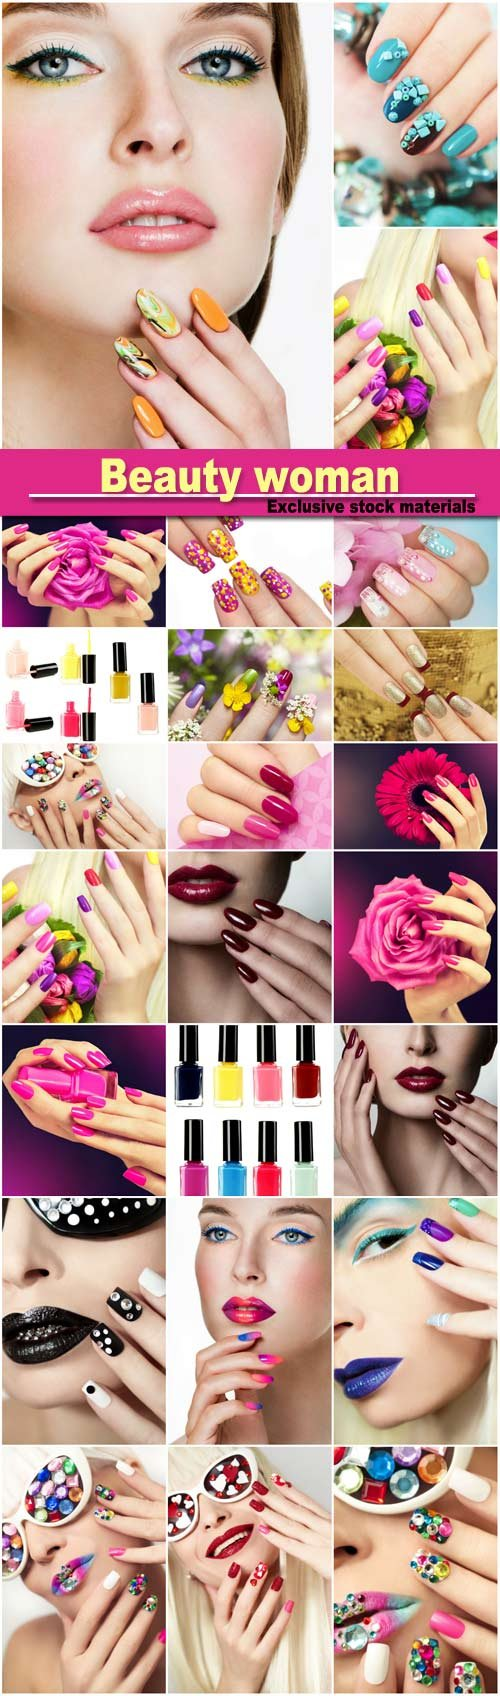 Beauty woman, professional makeup, manicure